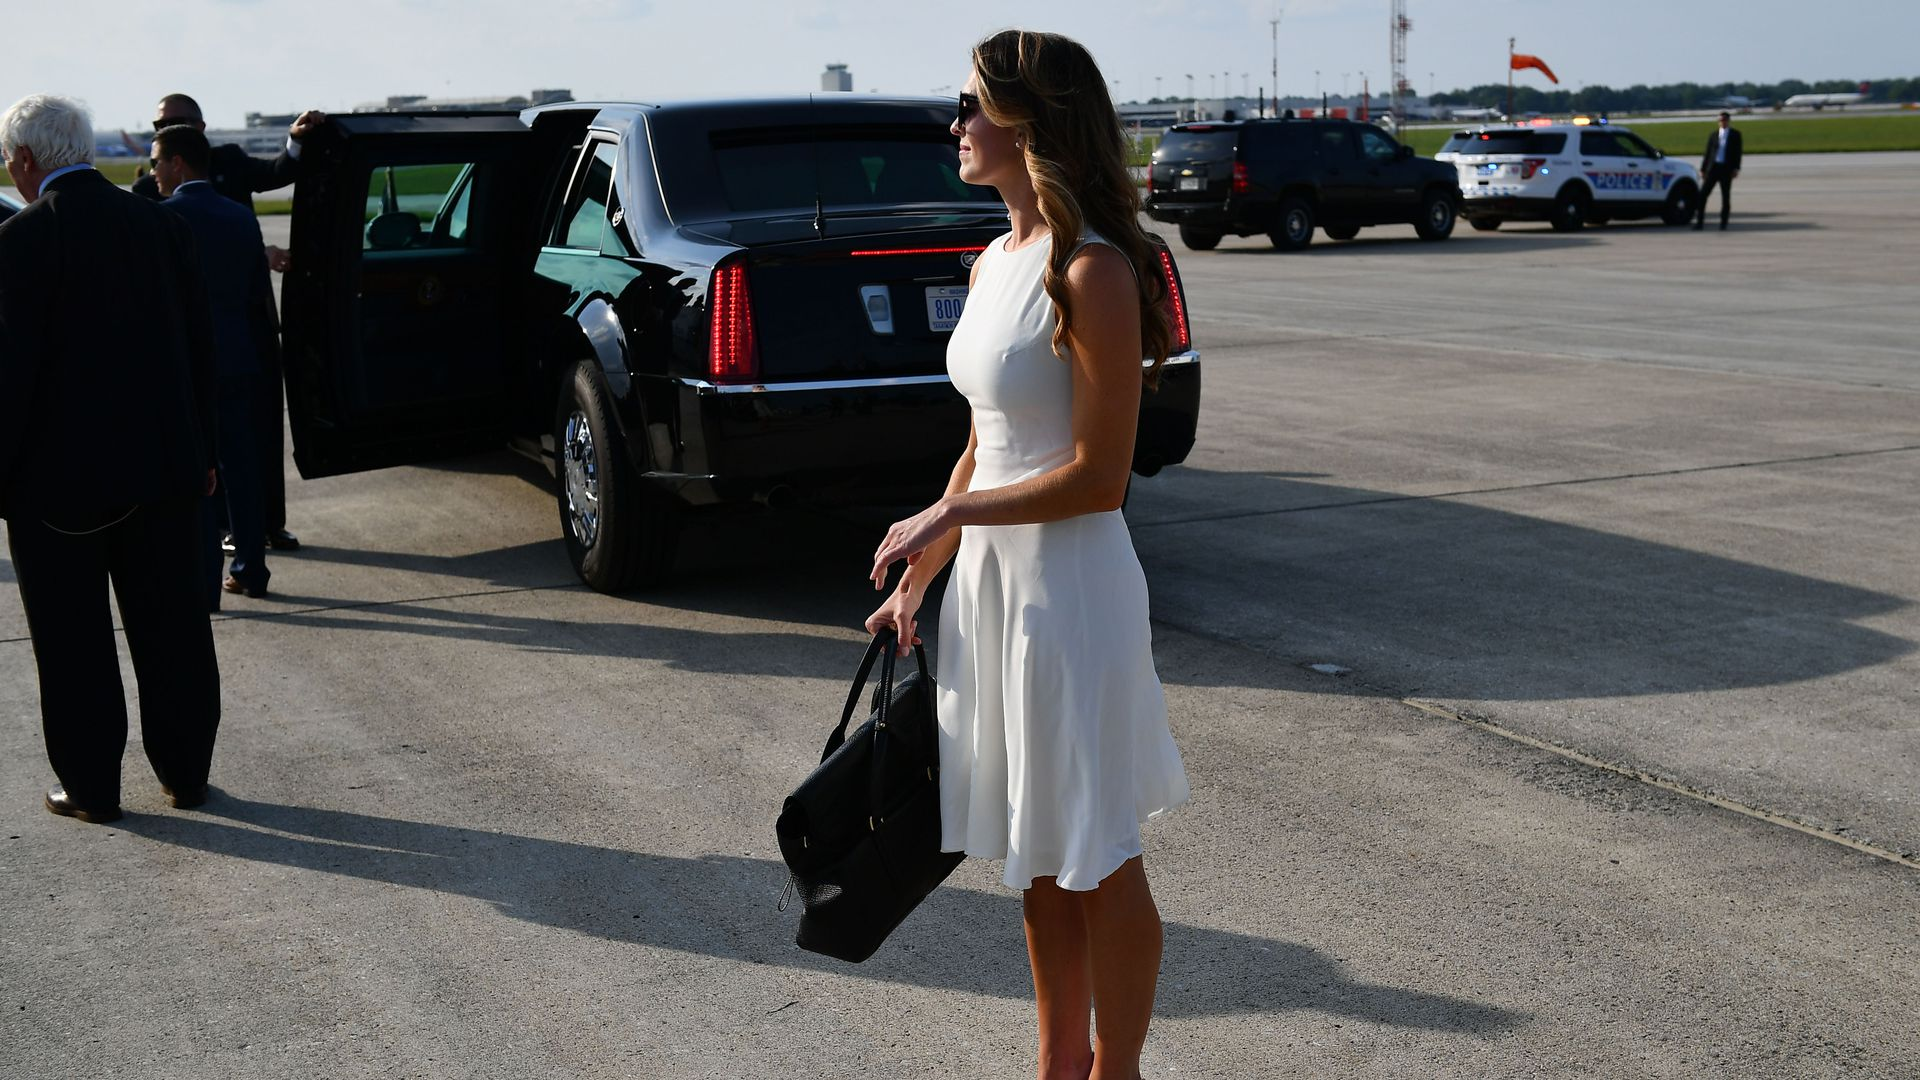 Hope Hicks stands outside wearing a white dress, heels and sunglasses